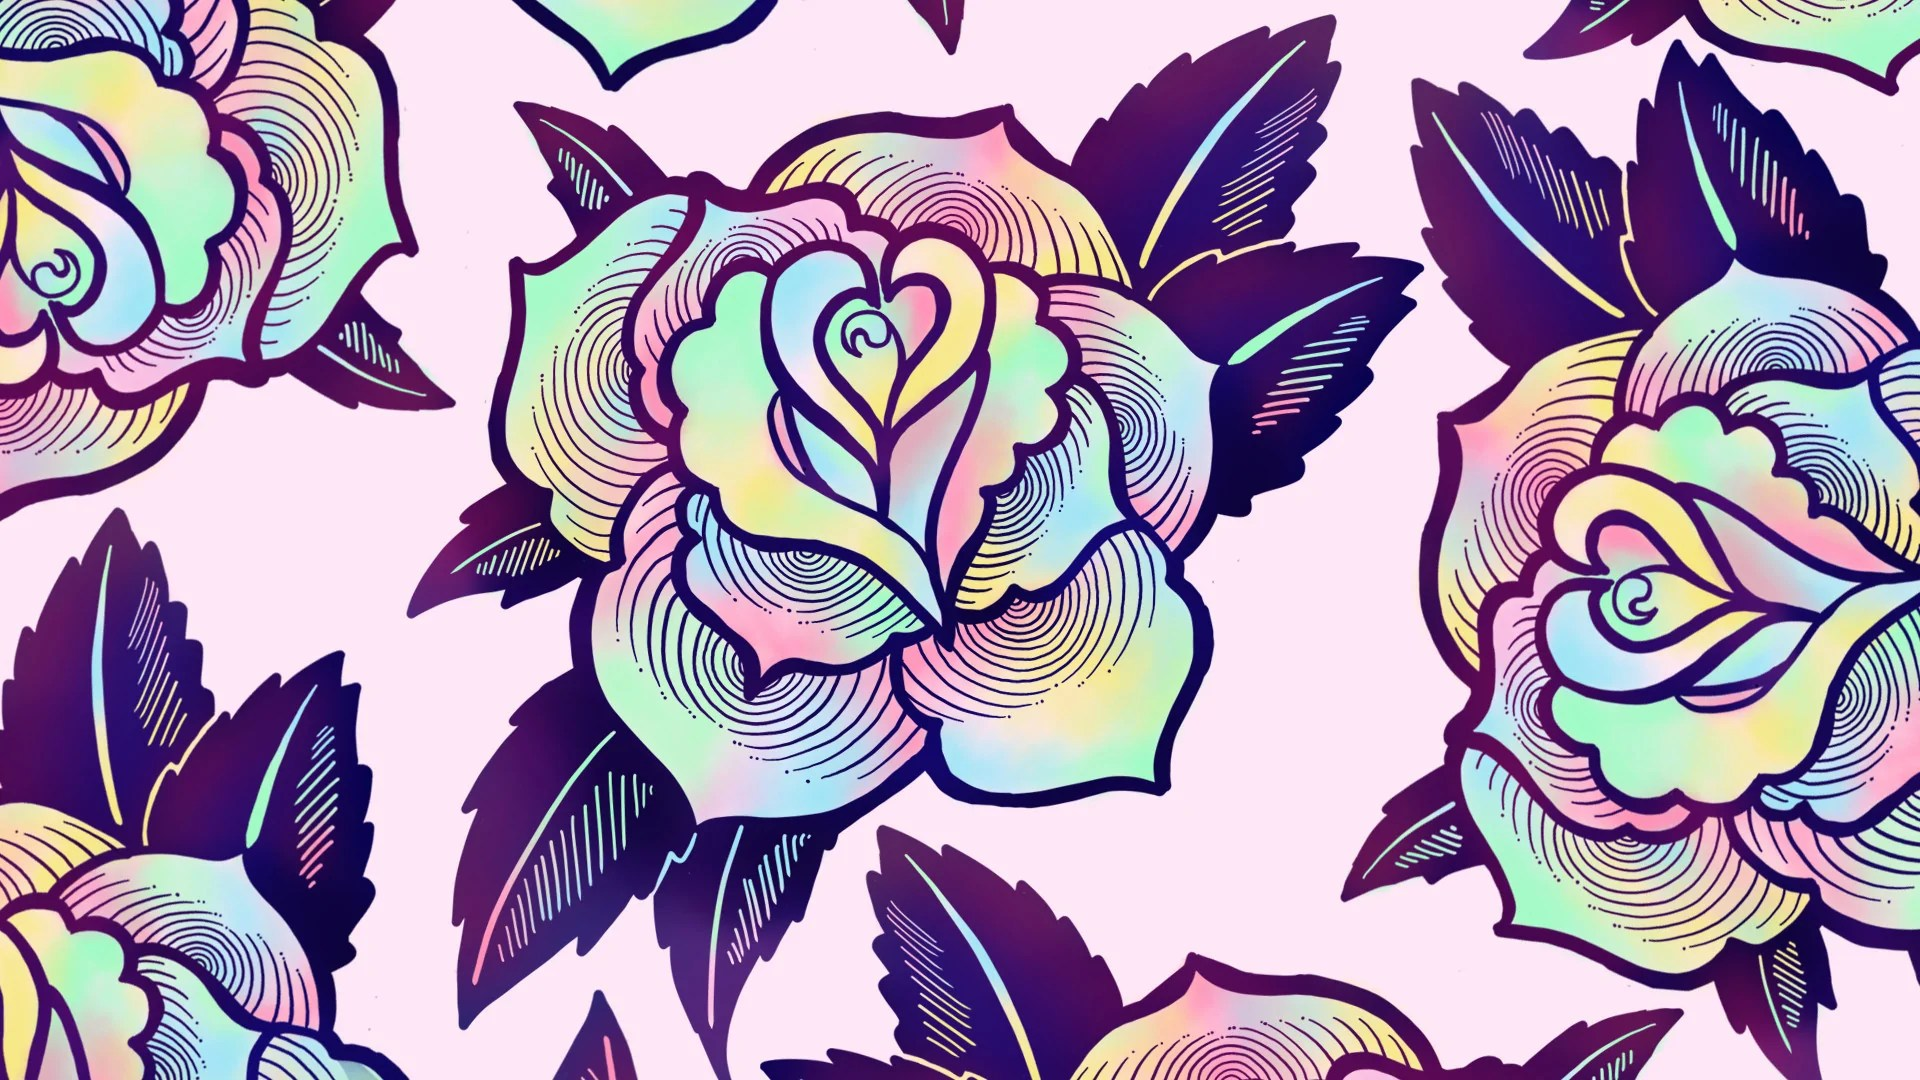 Iphone Wallpaper Trippy Free Digital Download Psychedelic Rose Wallpaper Ectogasm